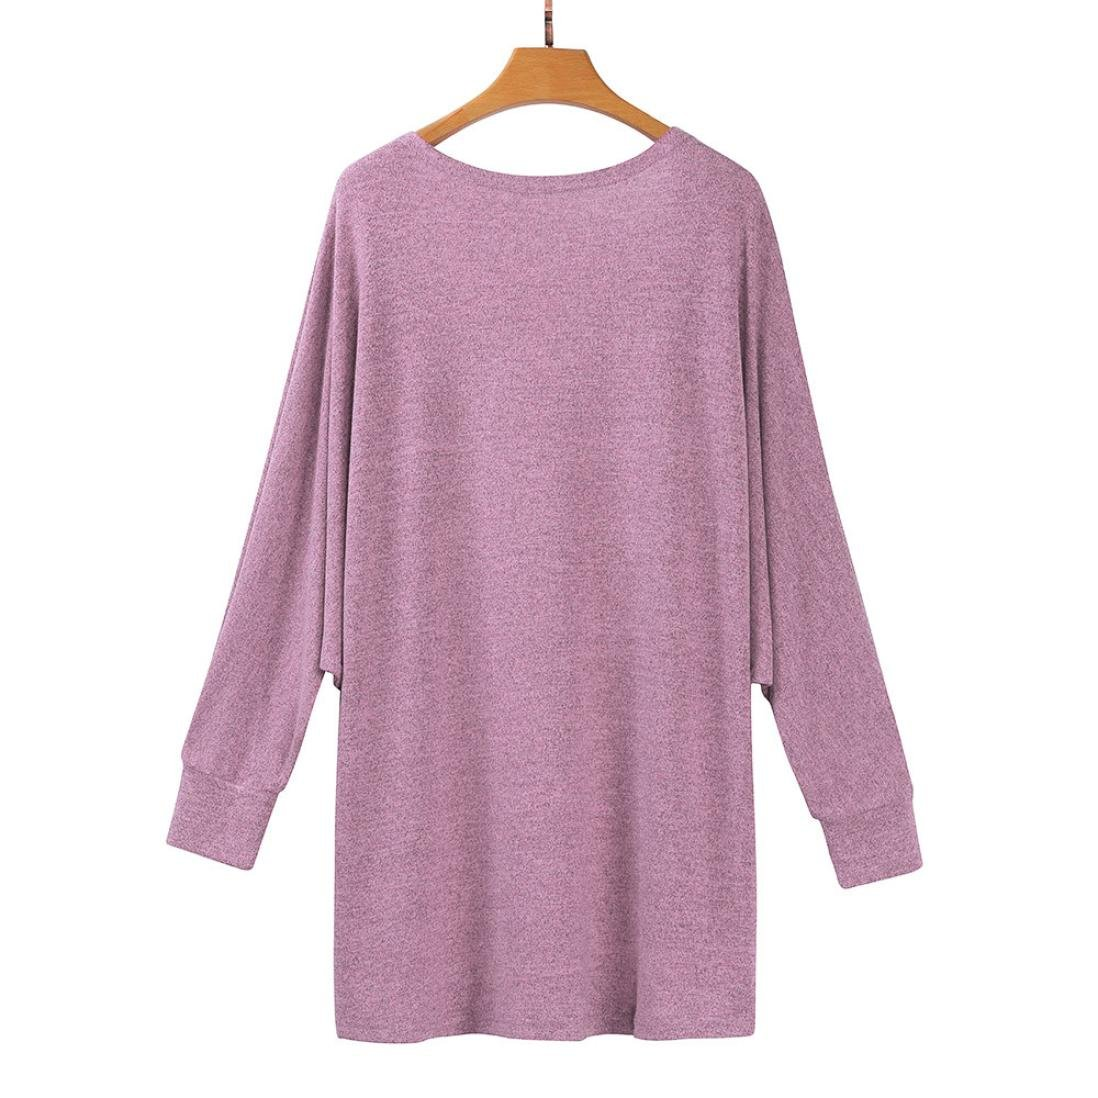 Hot Sale!Women's Cardigans Neartime Womens Kintted Cardigan Asymmetric Sweater Hem Long Sleeve Coat Tops (L, Pink) by NEARTIME (Image #3)